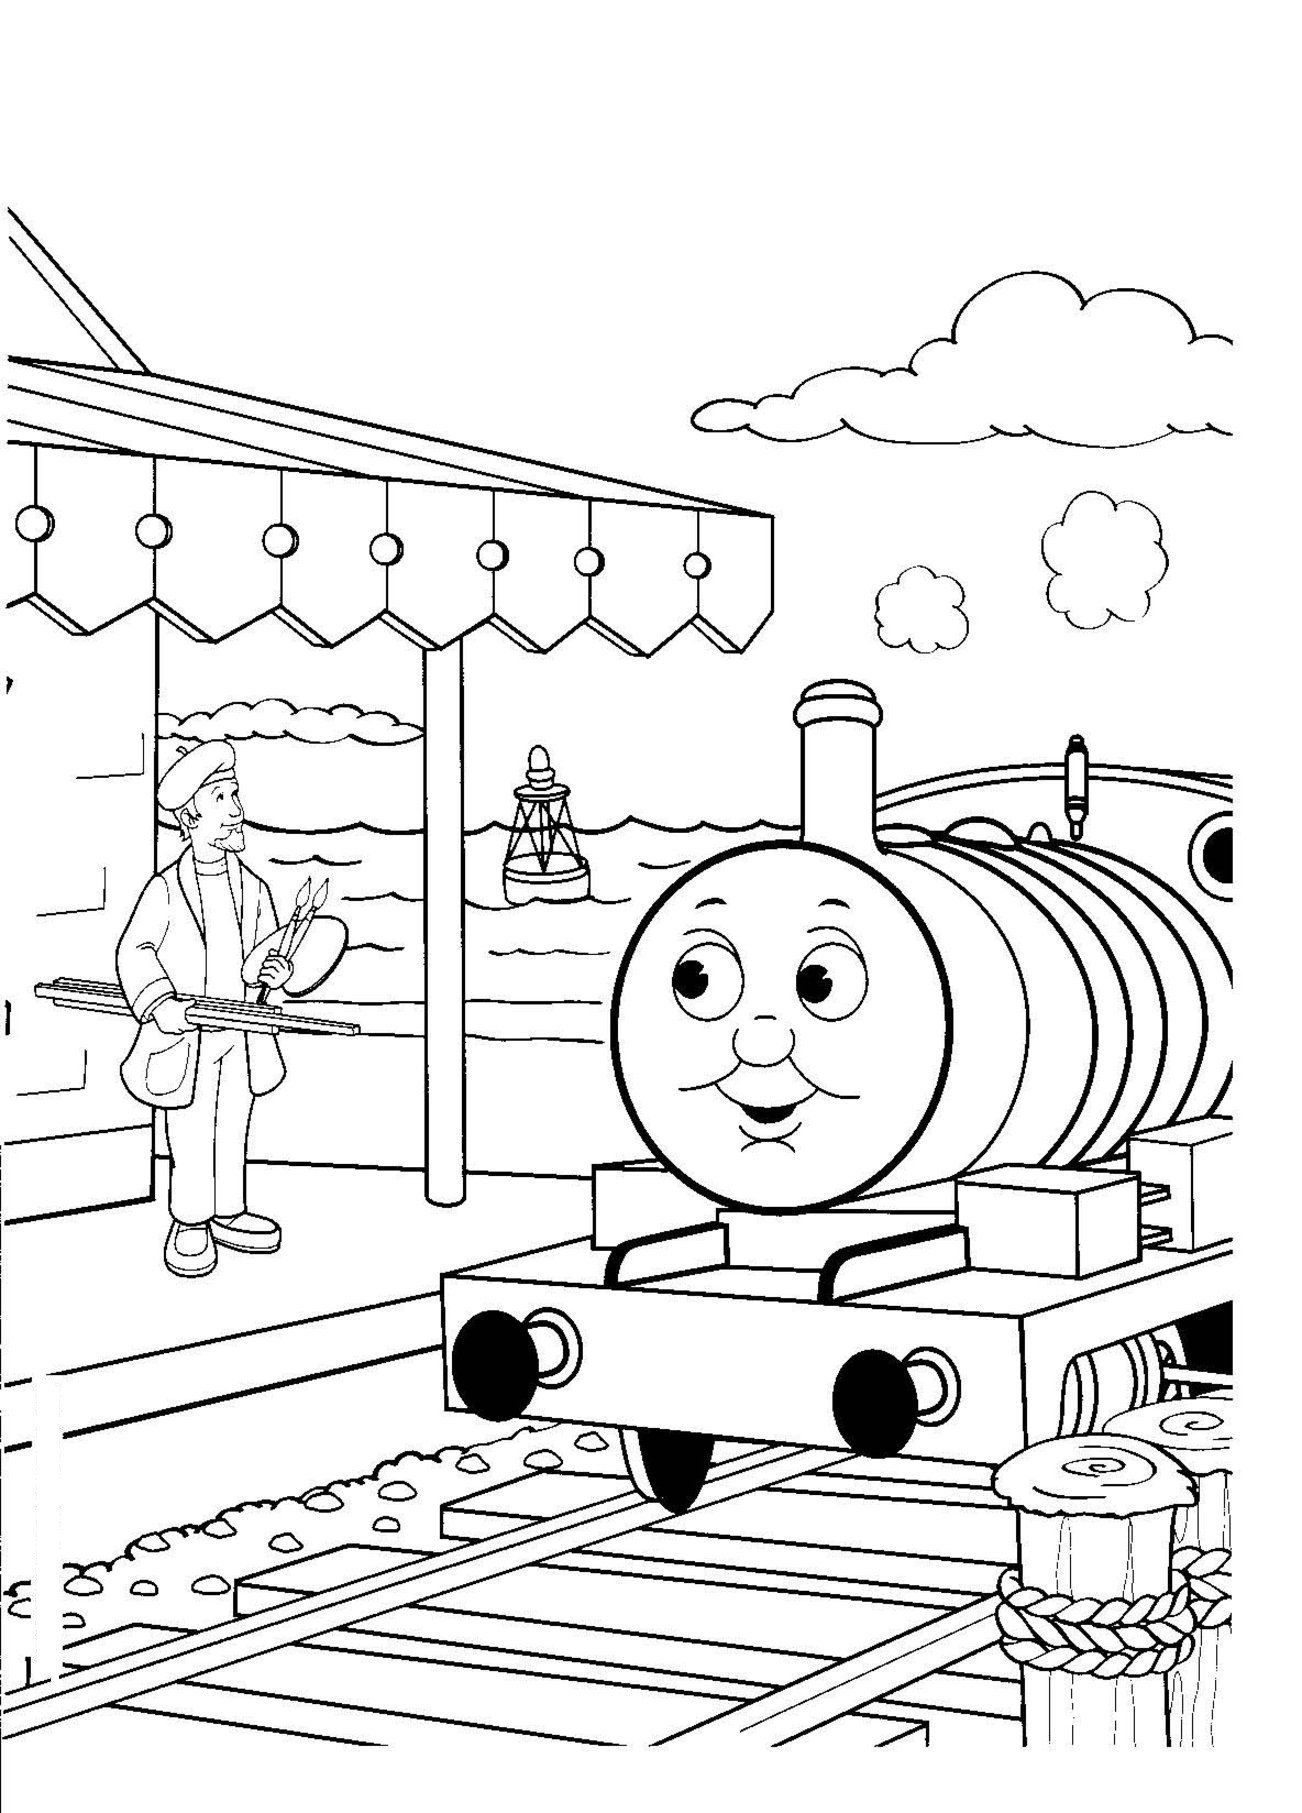 Colouring Train Game Images